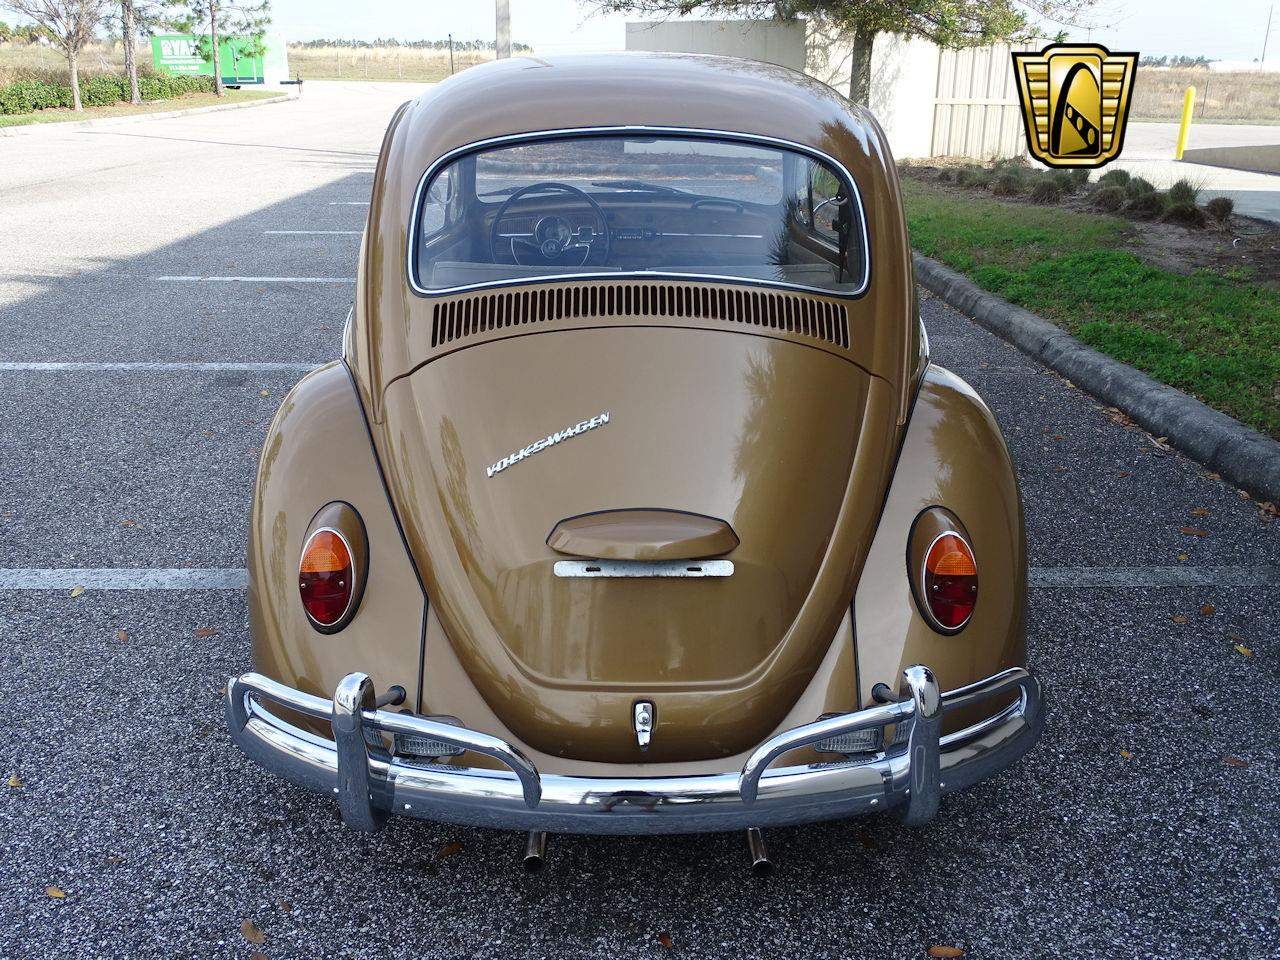 Large Picture of Classic '67 Volkswagen Beetle - $18,995.00 Offered by Gateway Classic Cars - Tampa - MTLL